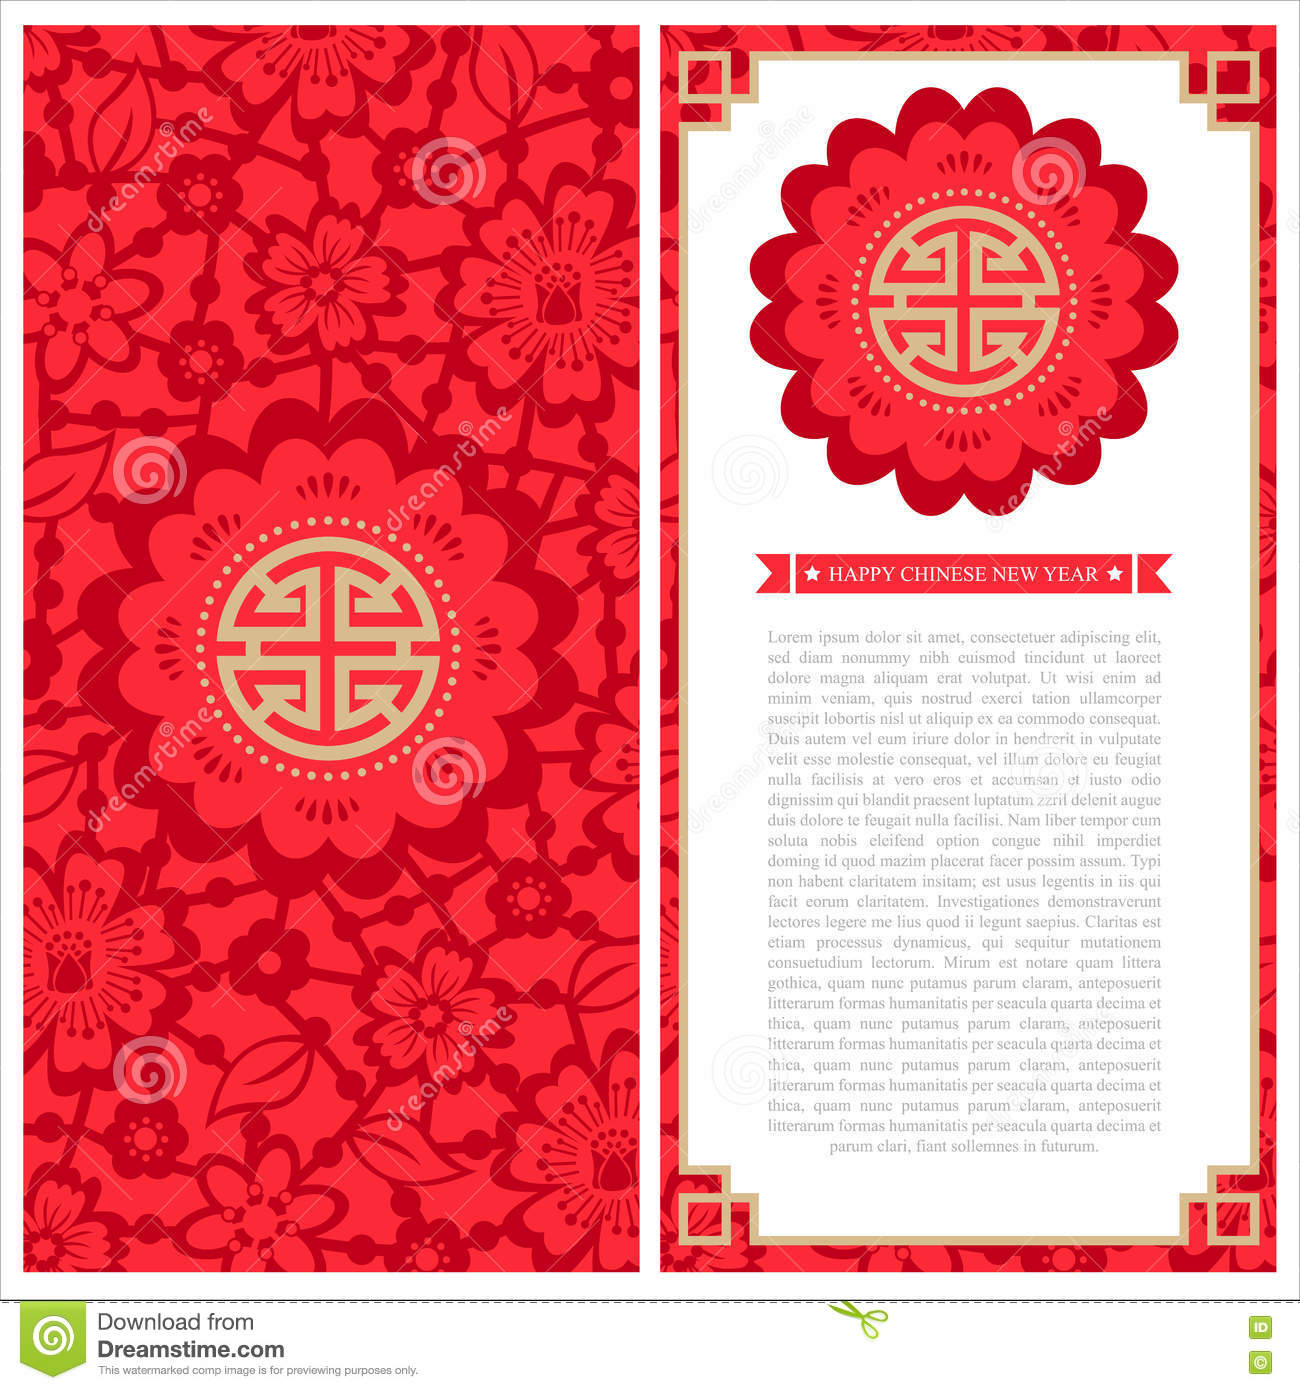 Chinese New Year Invitation Card Vector Image 78002542 – Chinese Invitation Card